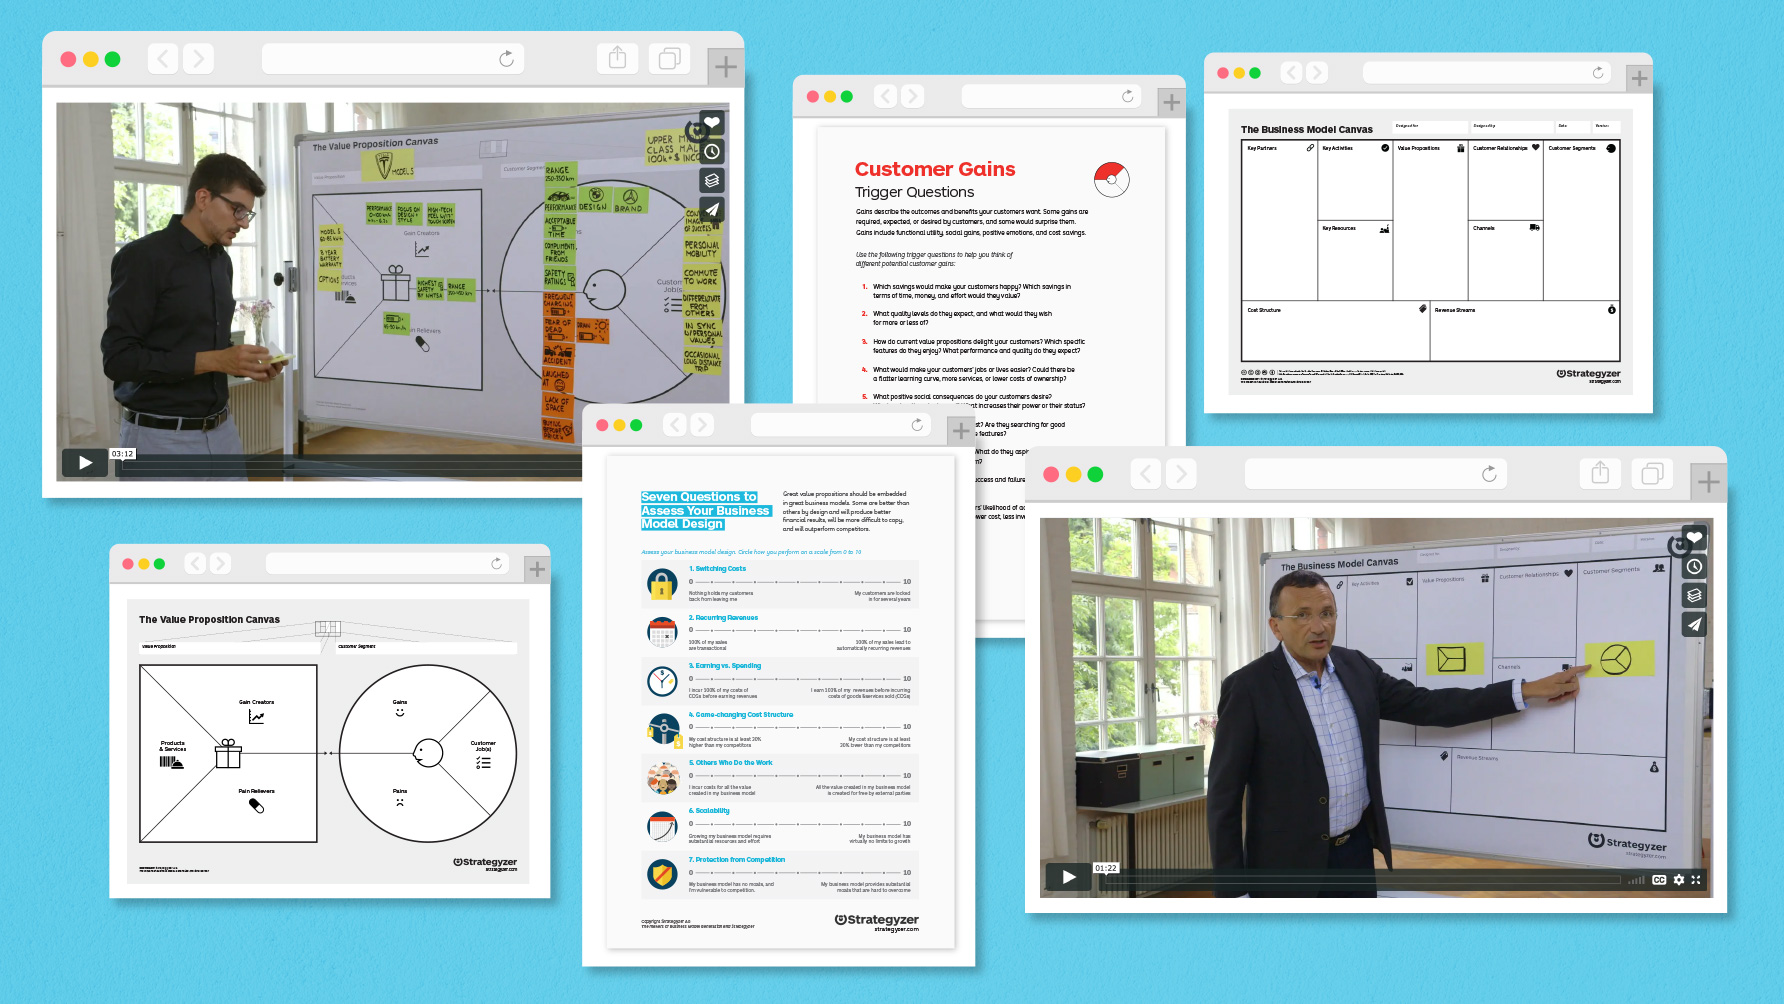 Free Online Course Materials for the Business Model Canvas